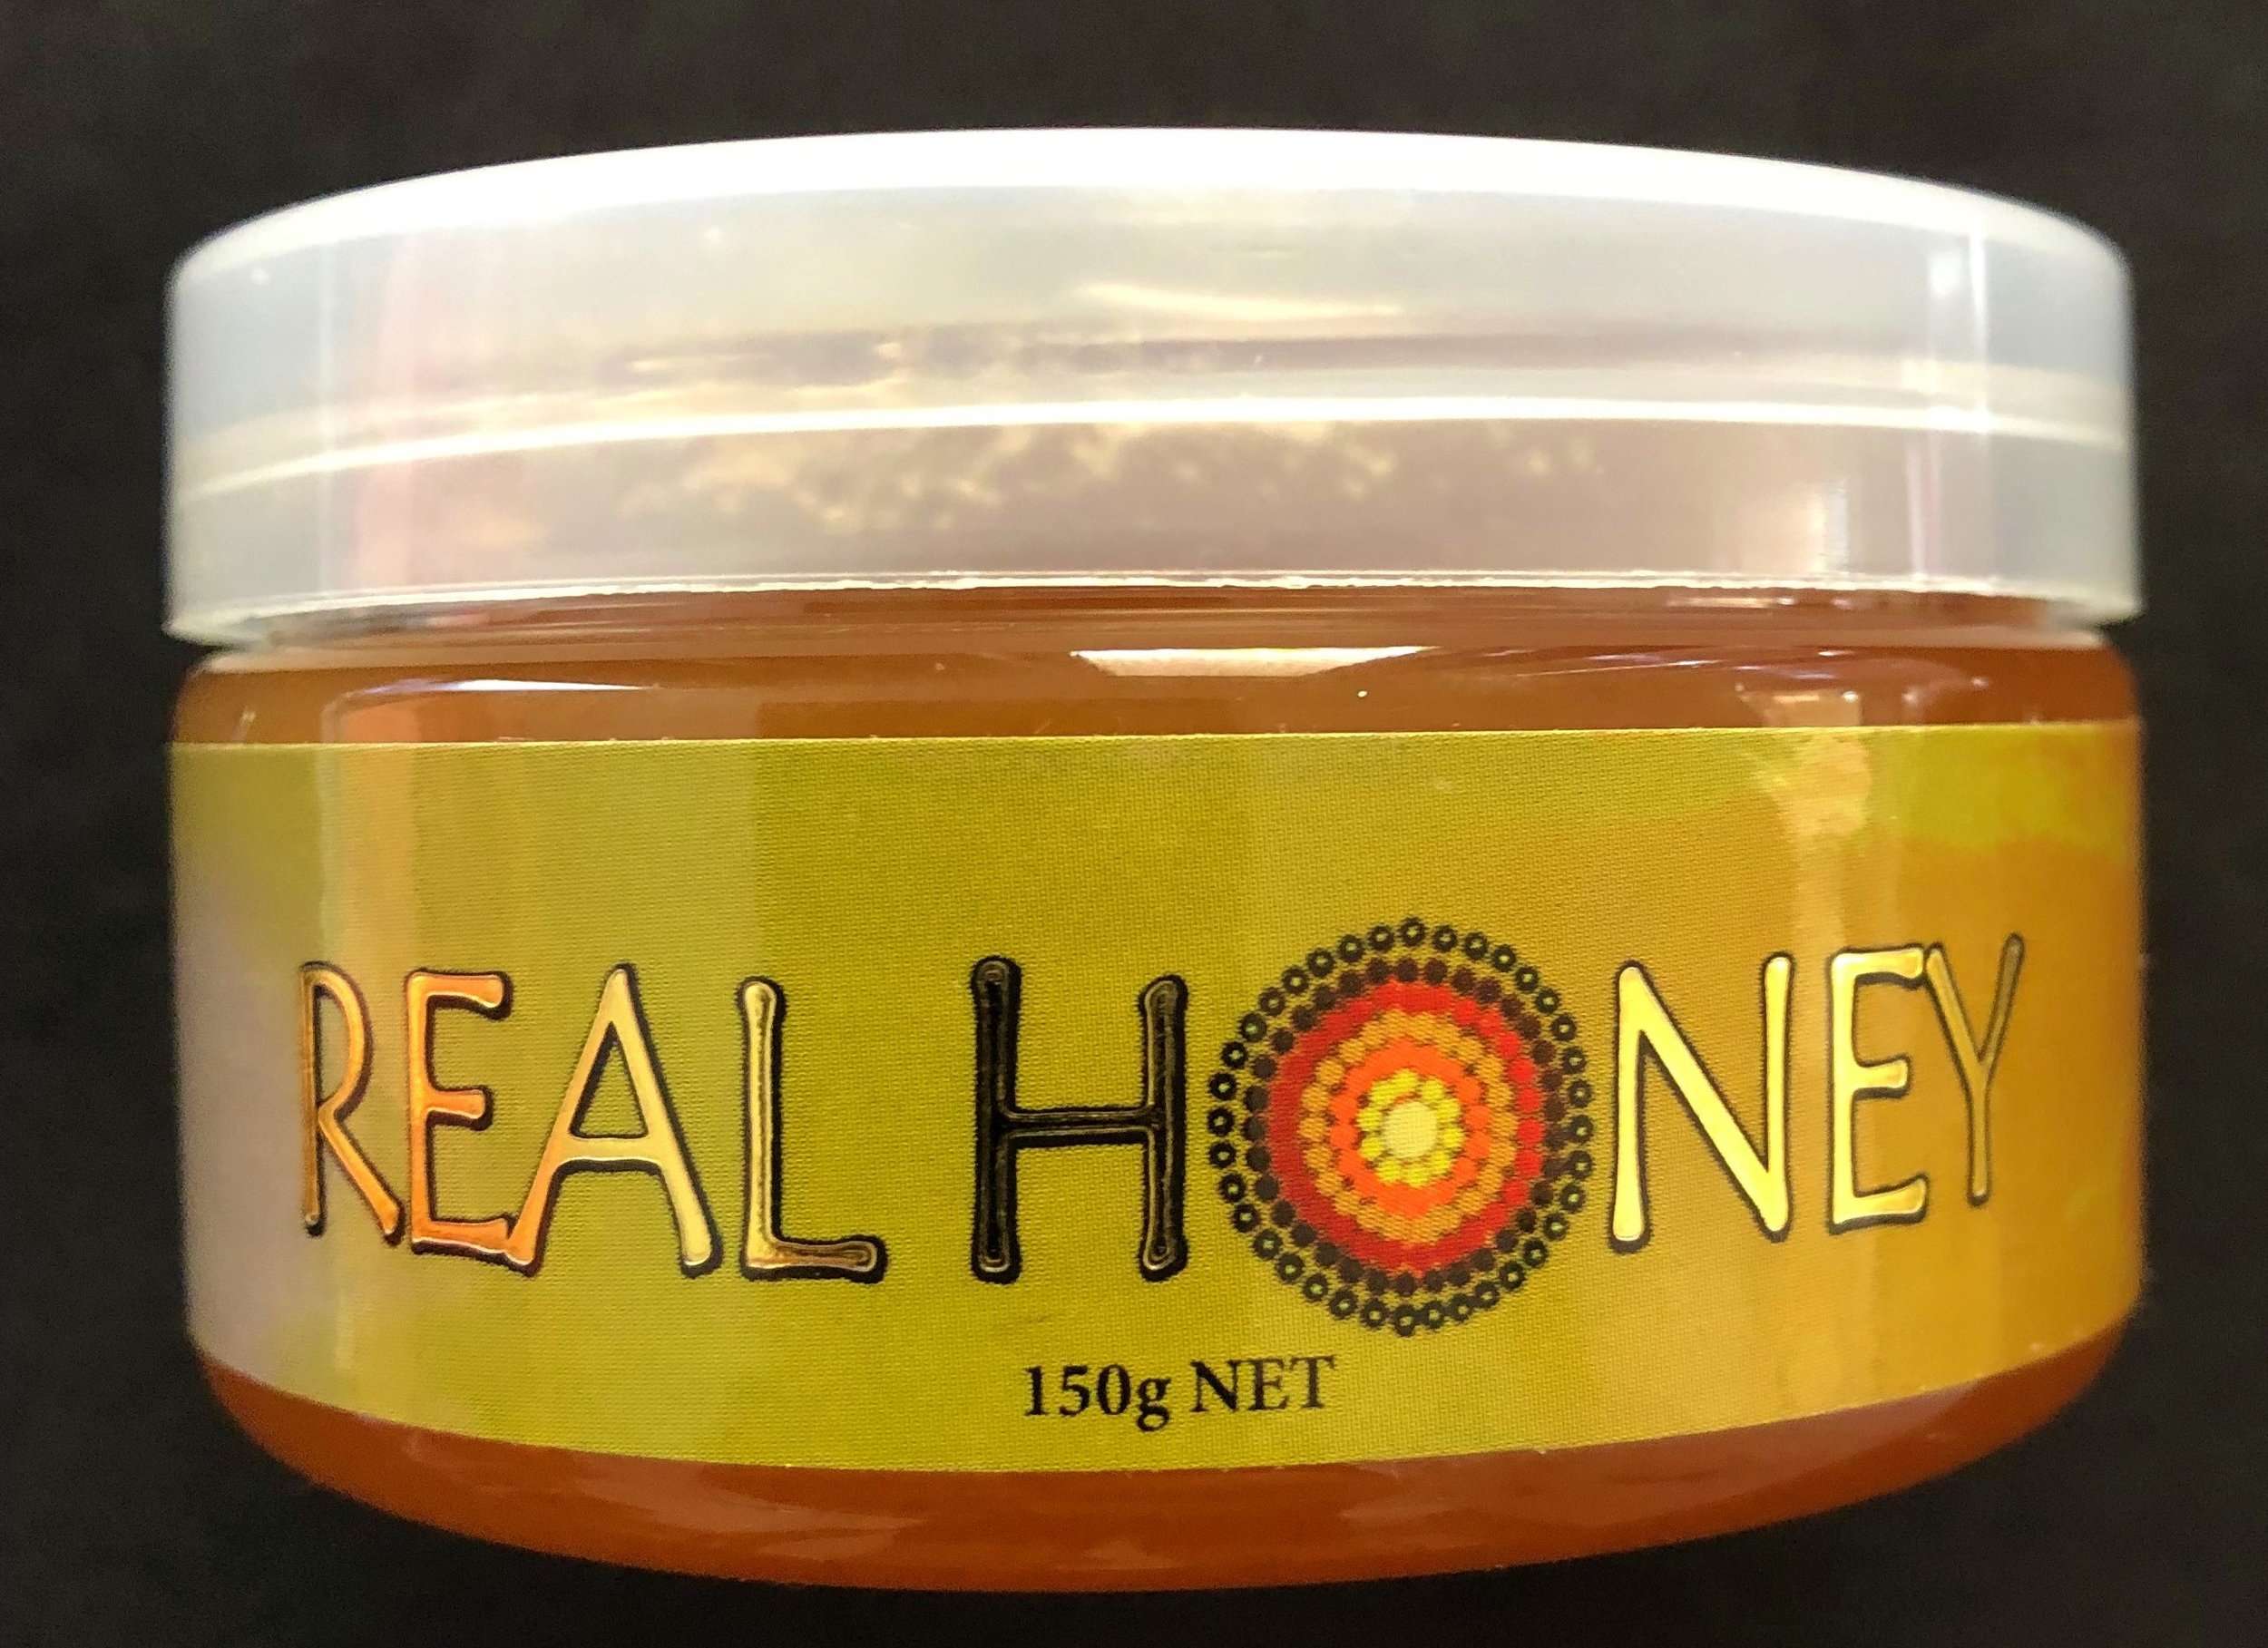 Native Australian Bush Honey - Hampers will include one of the following flavour profiles: Red Blush Rainforest Honey; Coastal Bio-active Honey; Golden Forest Honey